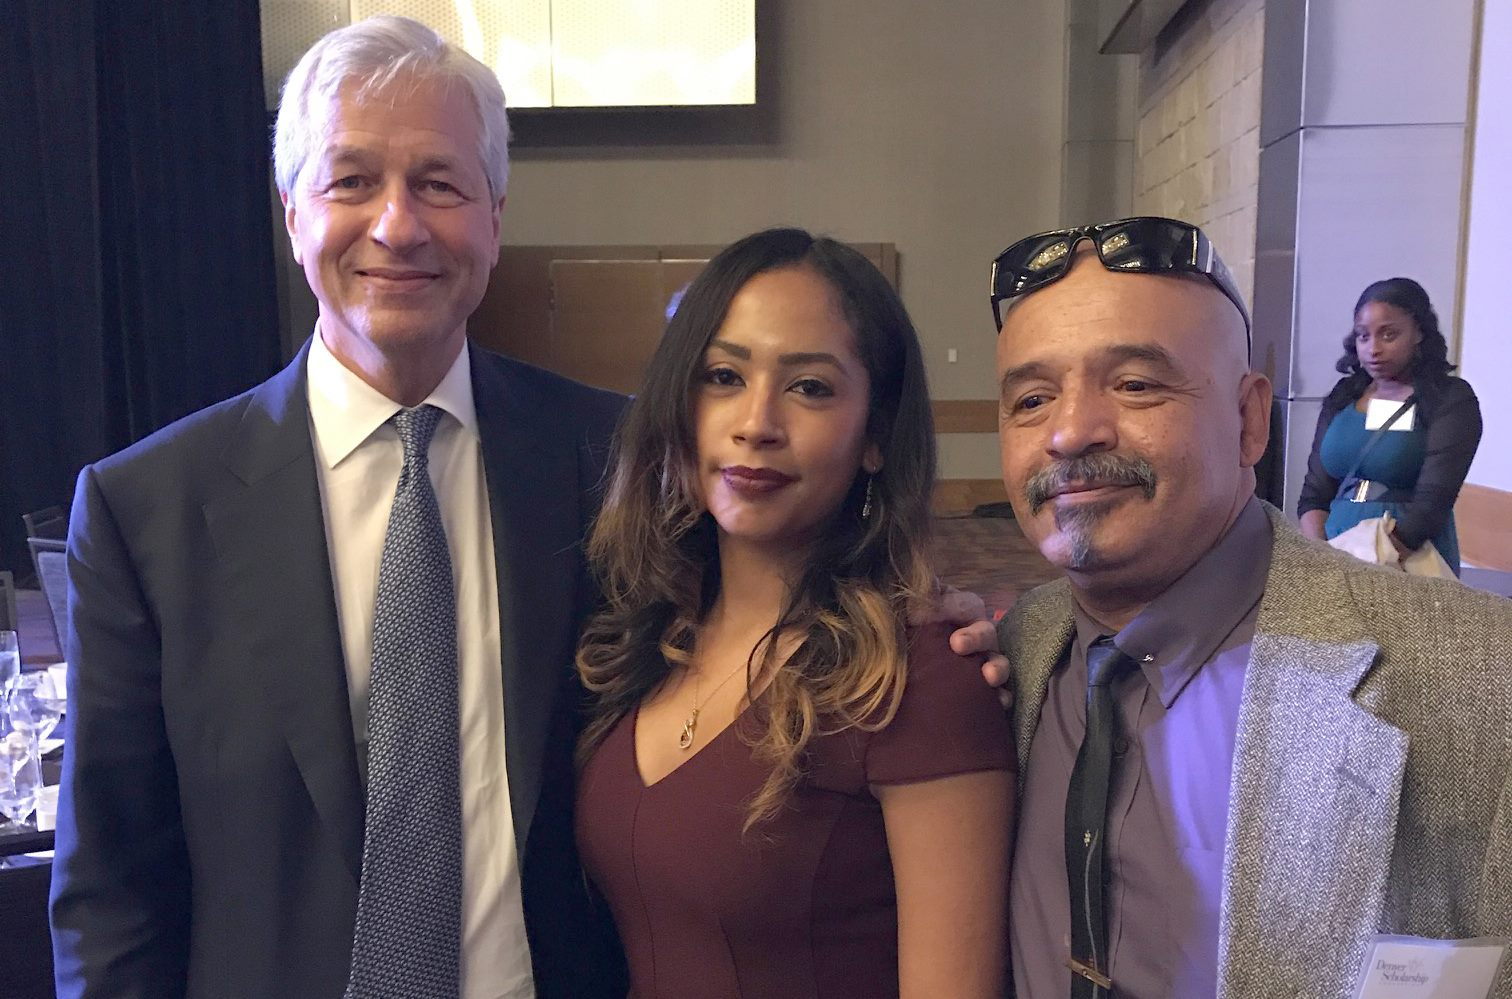 a white man and Hispanic woman and man standing together smiling